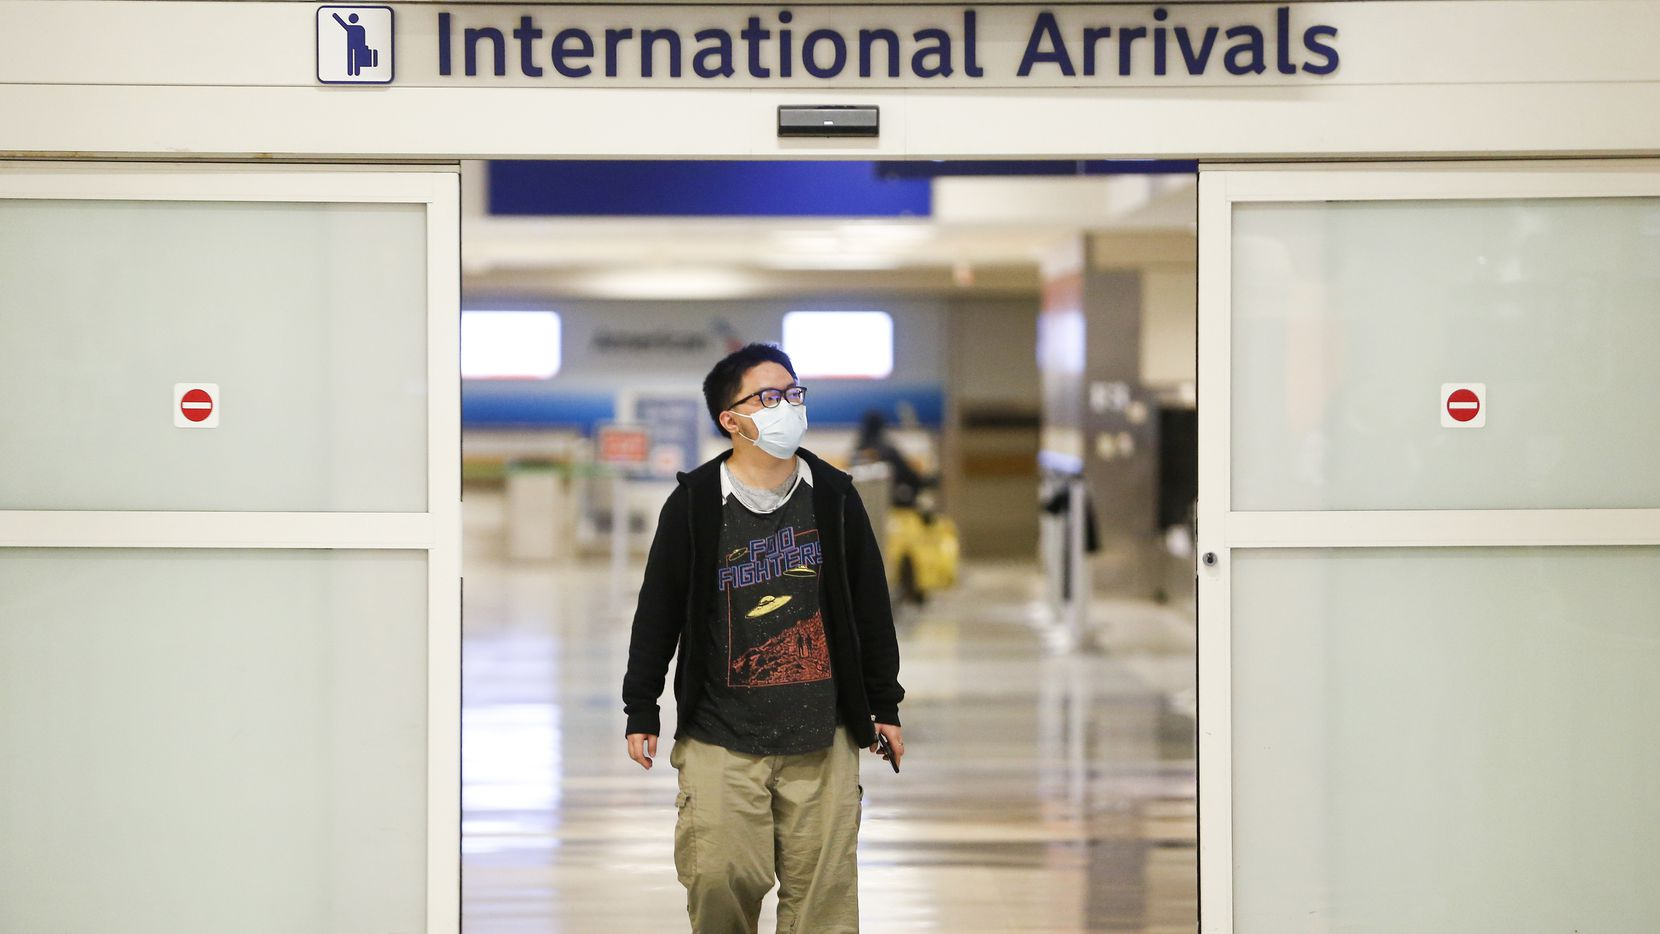 Wearing a protective mask, Frank Ye, of Shenzhen, China, arrives in the international arrivals area of DFW International Airport after a flight from Hong Kong on Tuesday, Jan. 28, 2020.